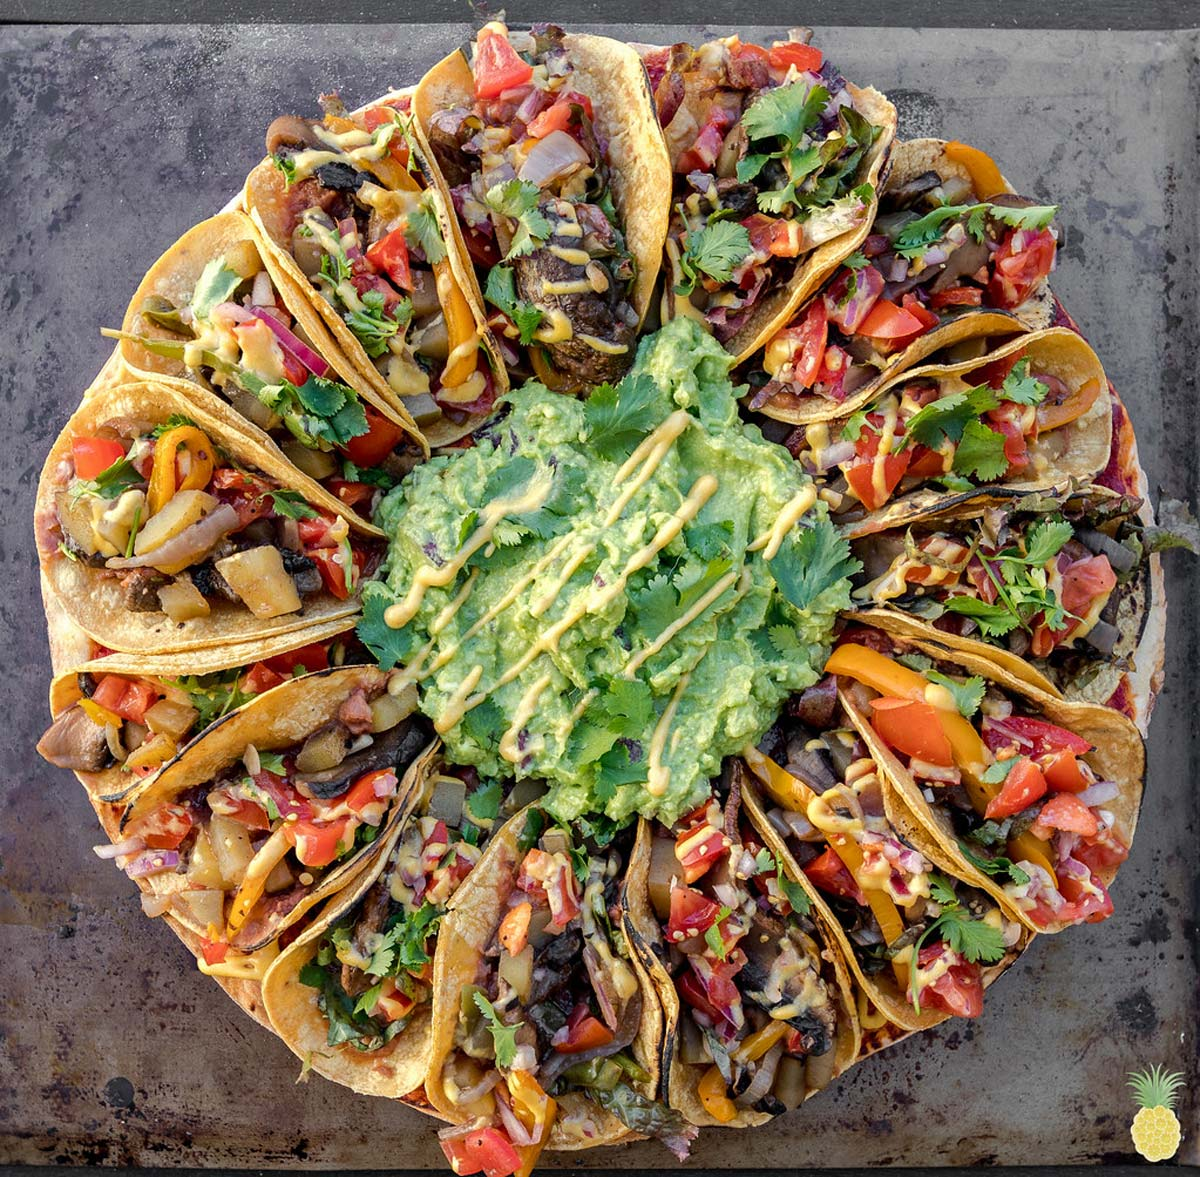 a pizza topped with guacamole in the center and surrounded by veggie tacos